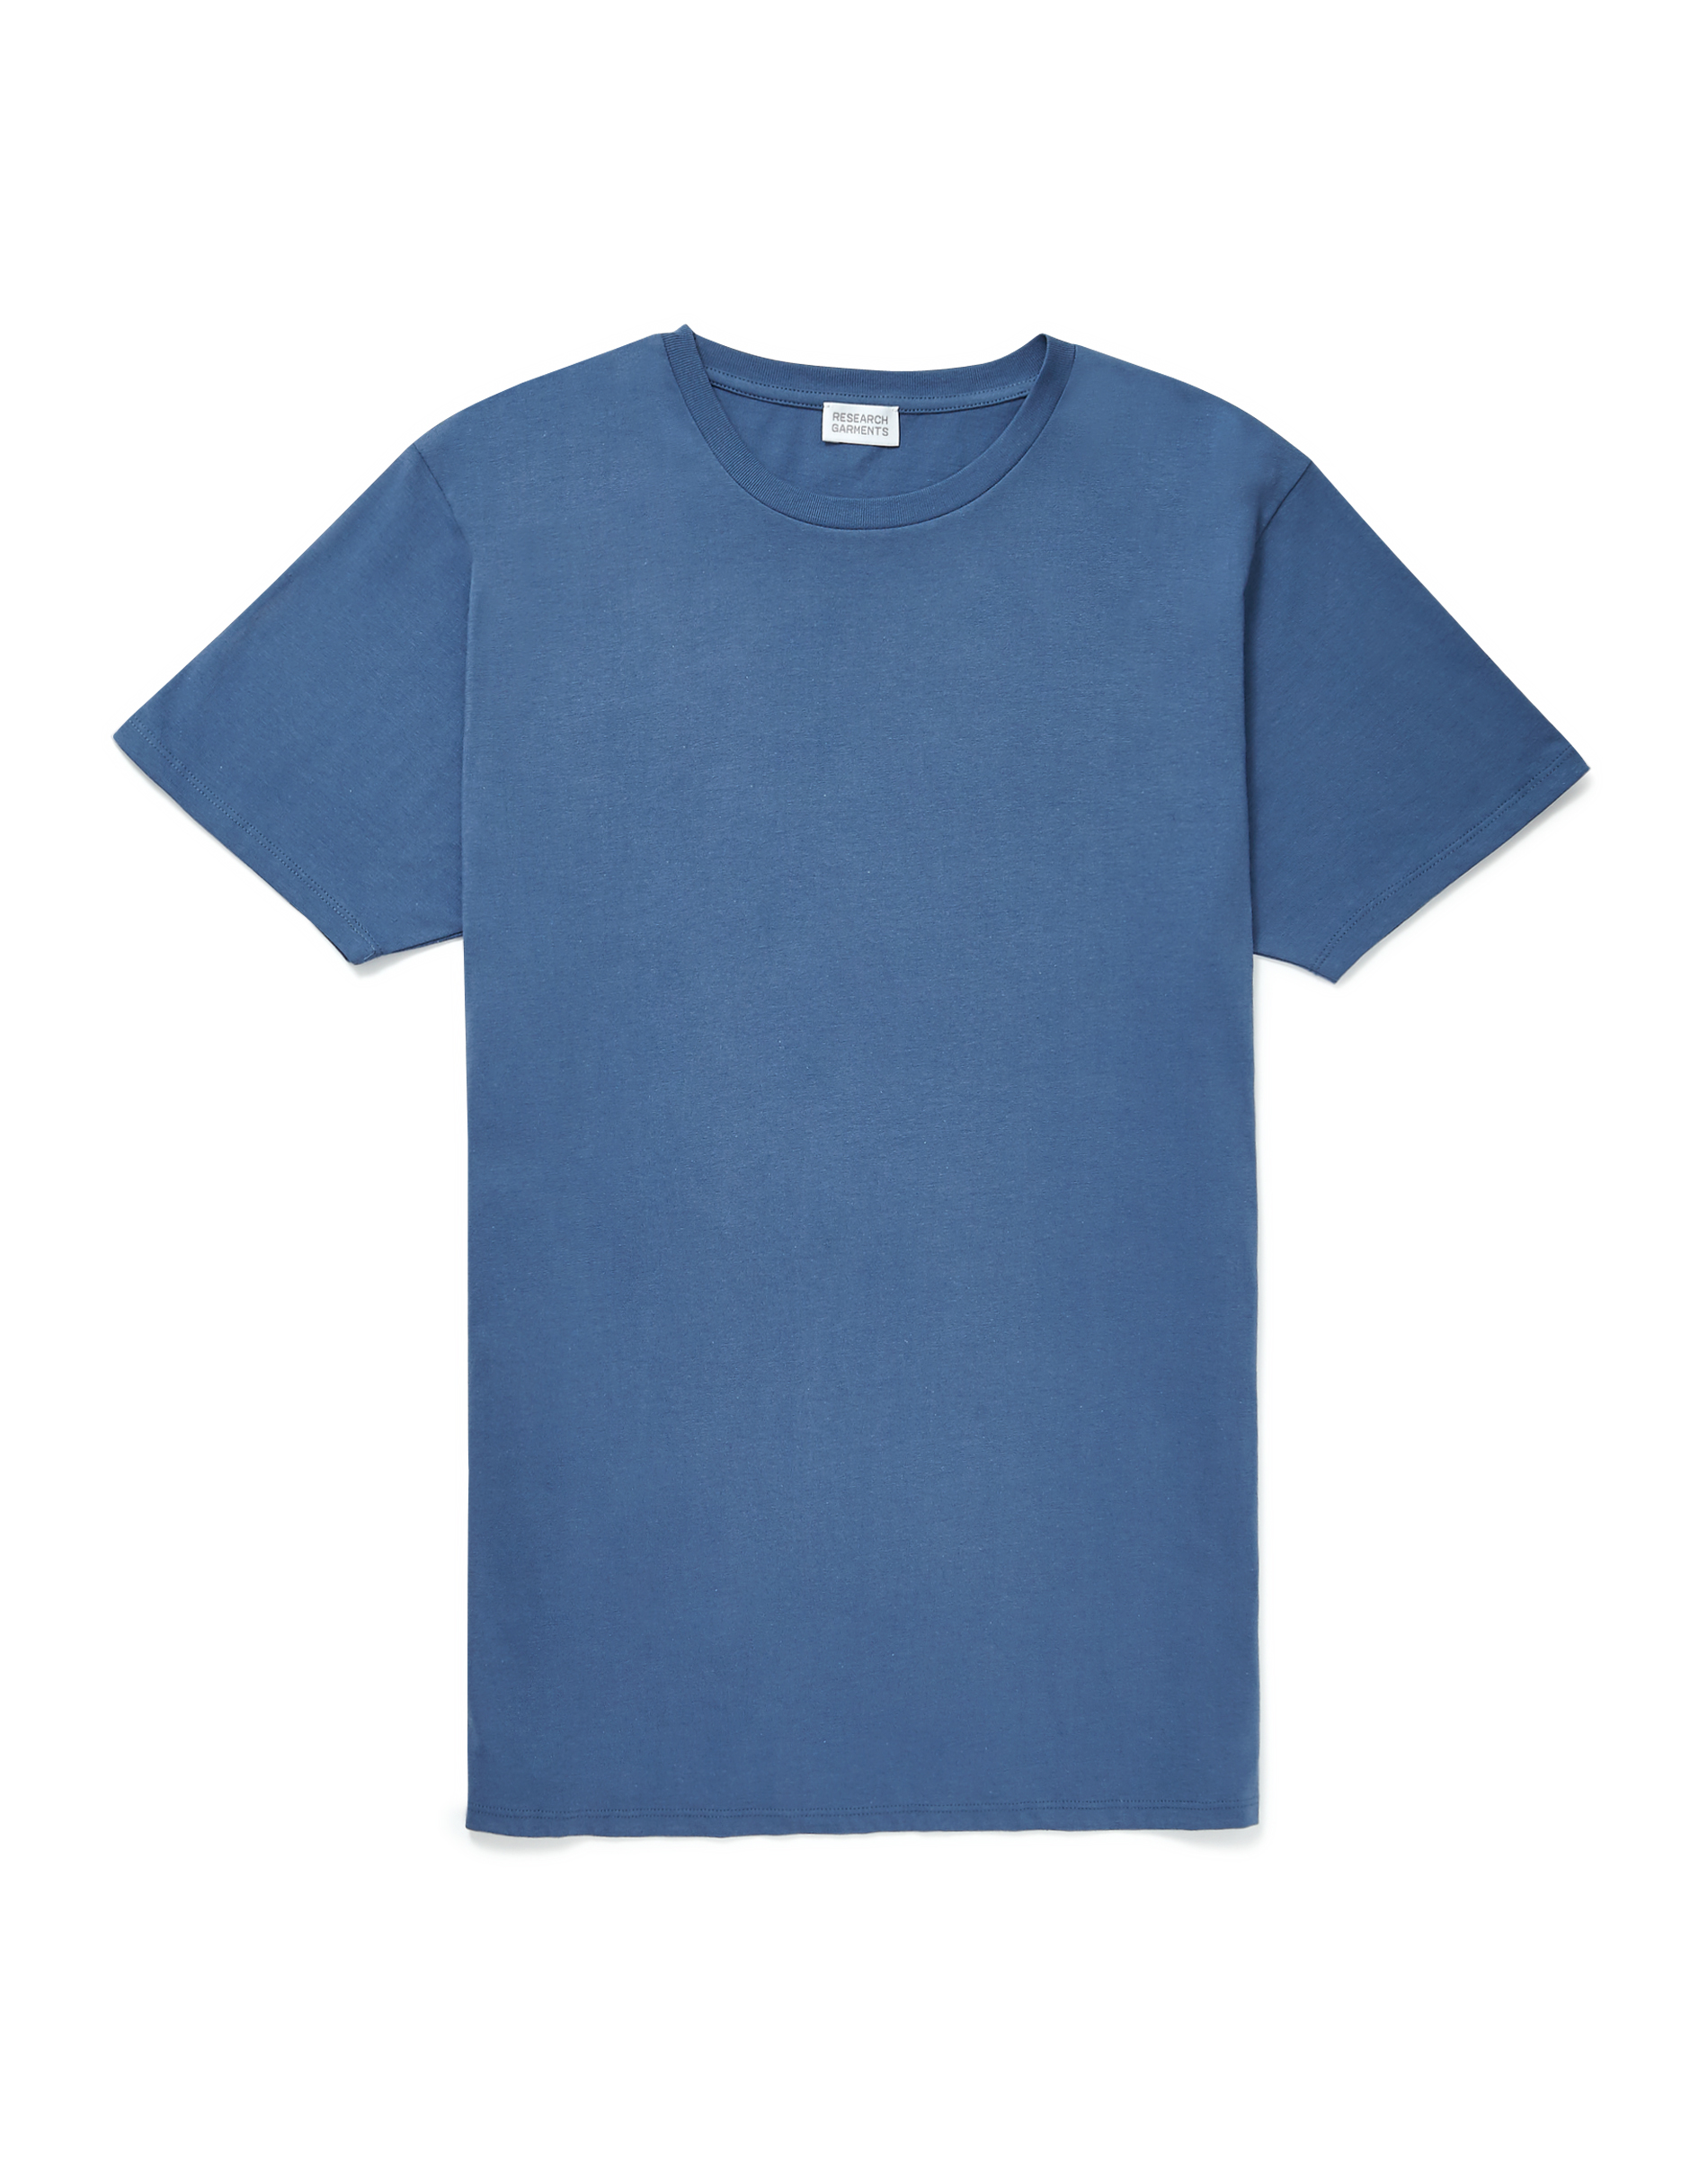 Research Garments Denim Blue The Perfect Blue T-shirt